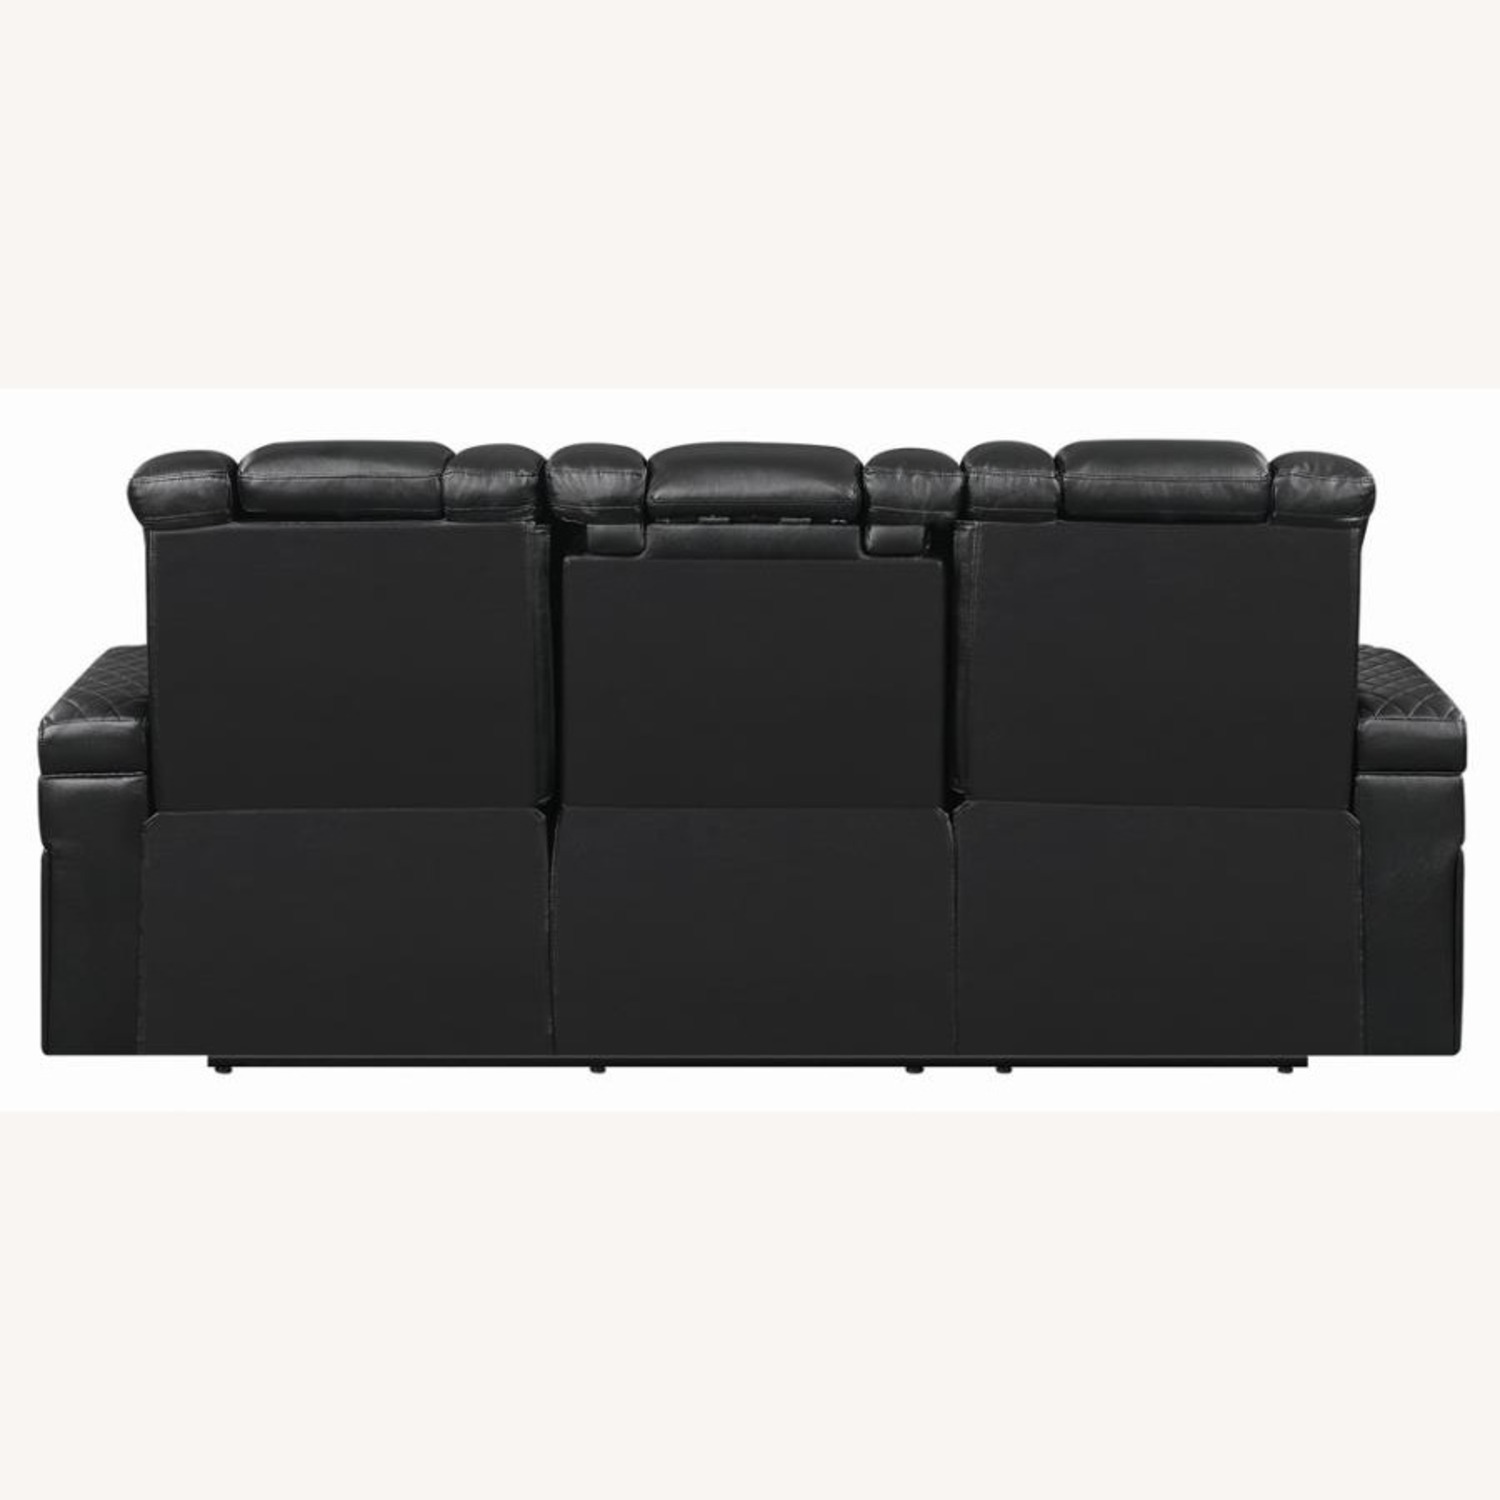 Power Sofa In Black Leather W/ LED Cupholder - image-3